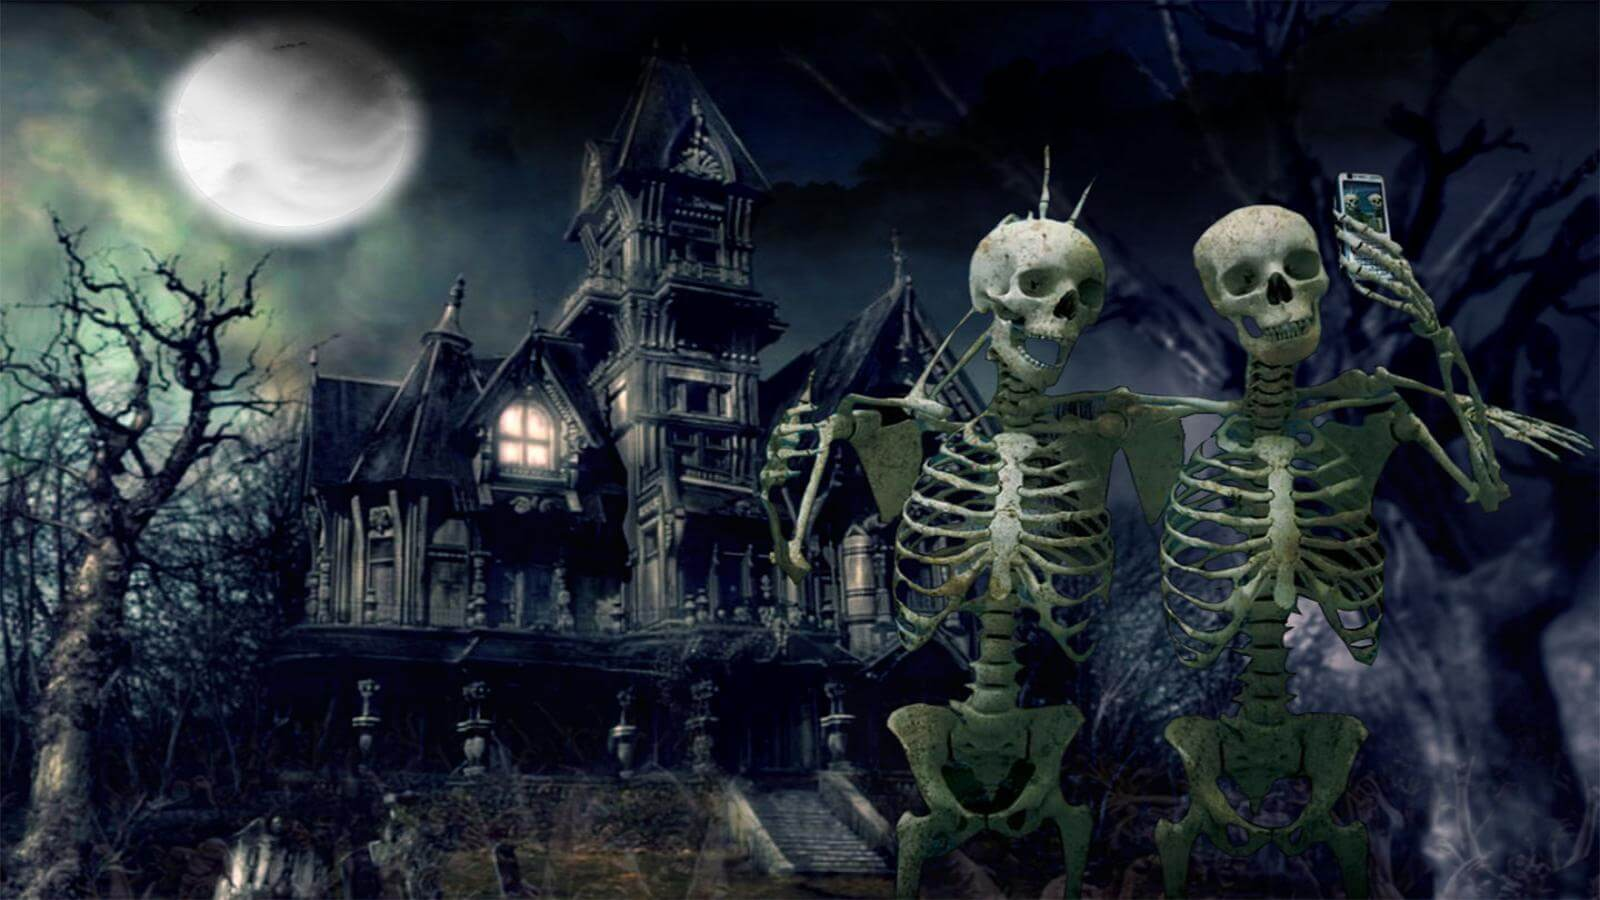 Happy Halloween Wallpaper Skeletons Haunted House